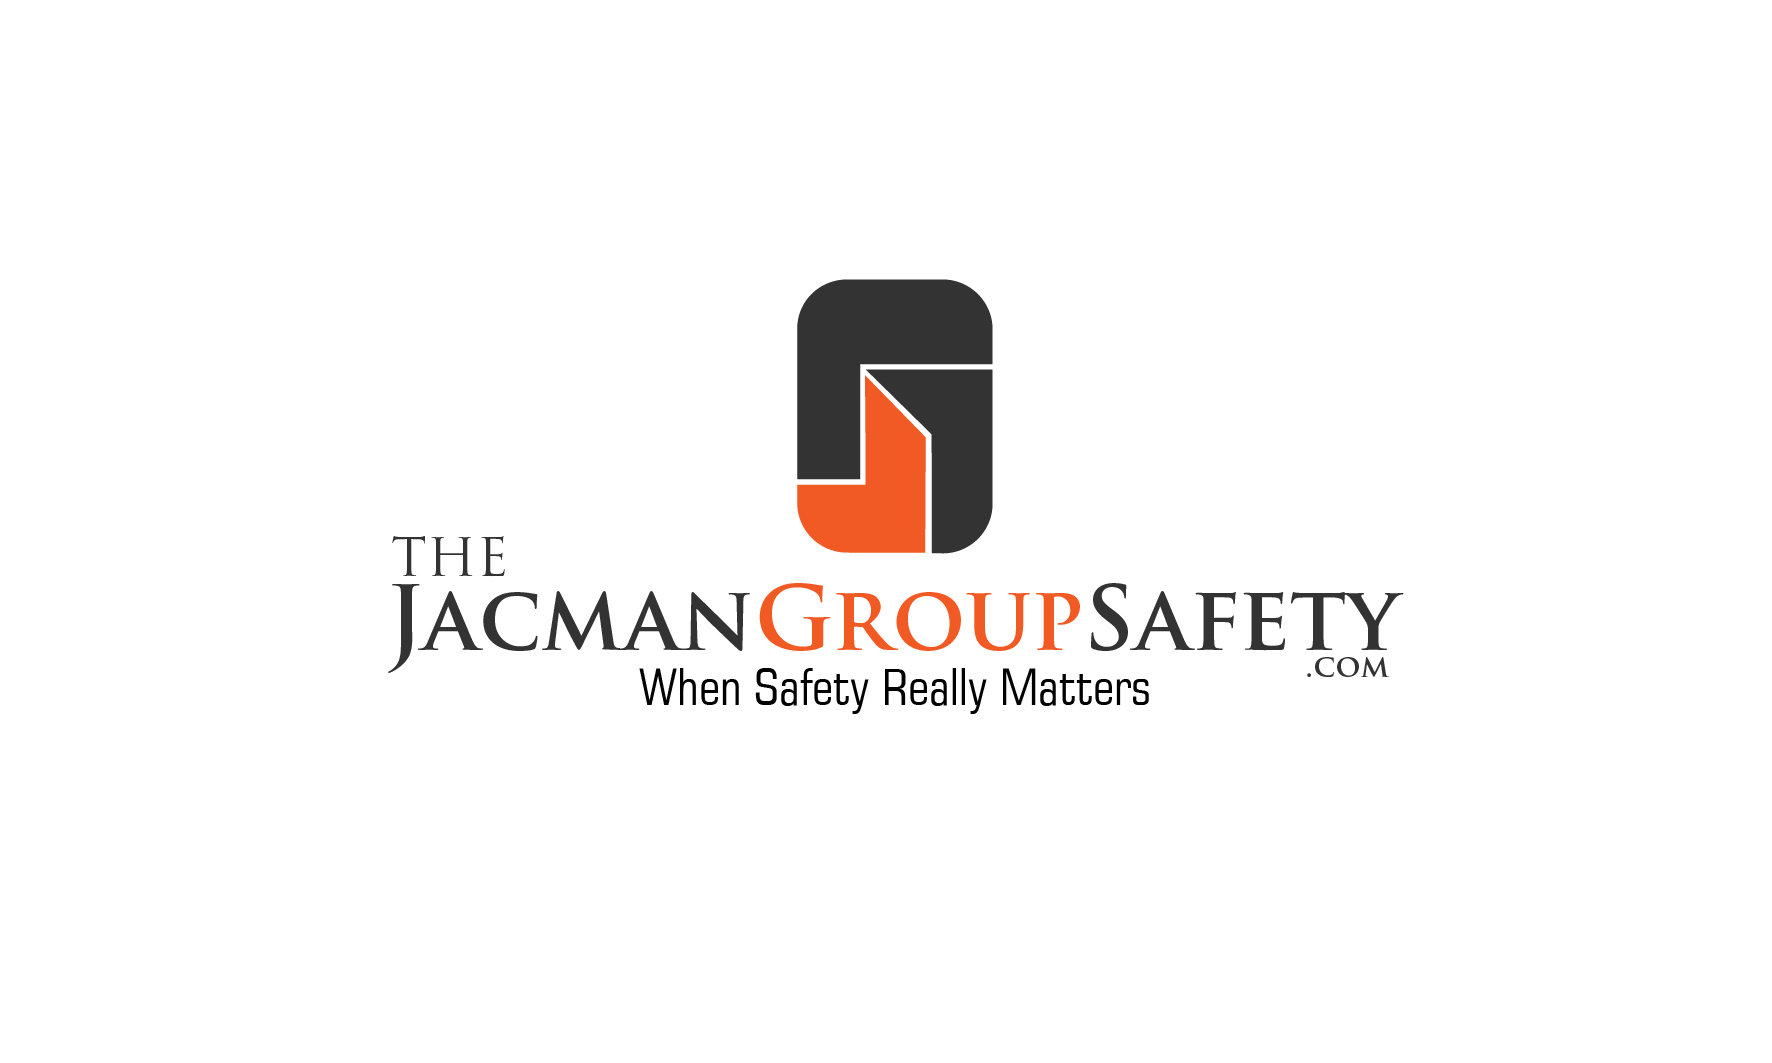 Logo Design by 3draw - Entry No. 70 in the Logo Design Contest The Jacman Group Logo Design.